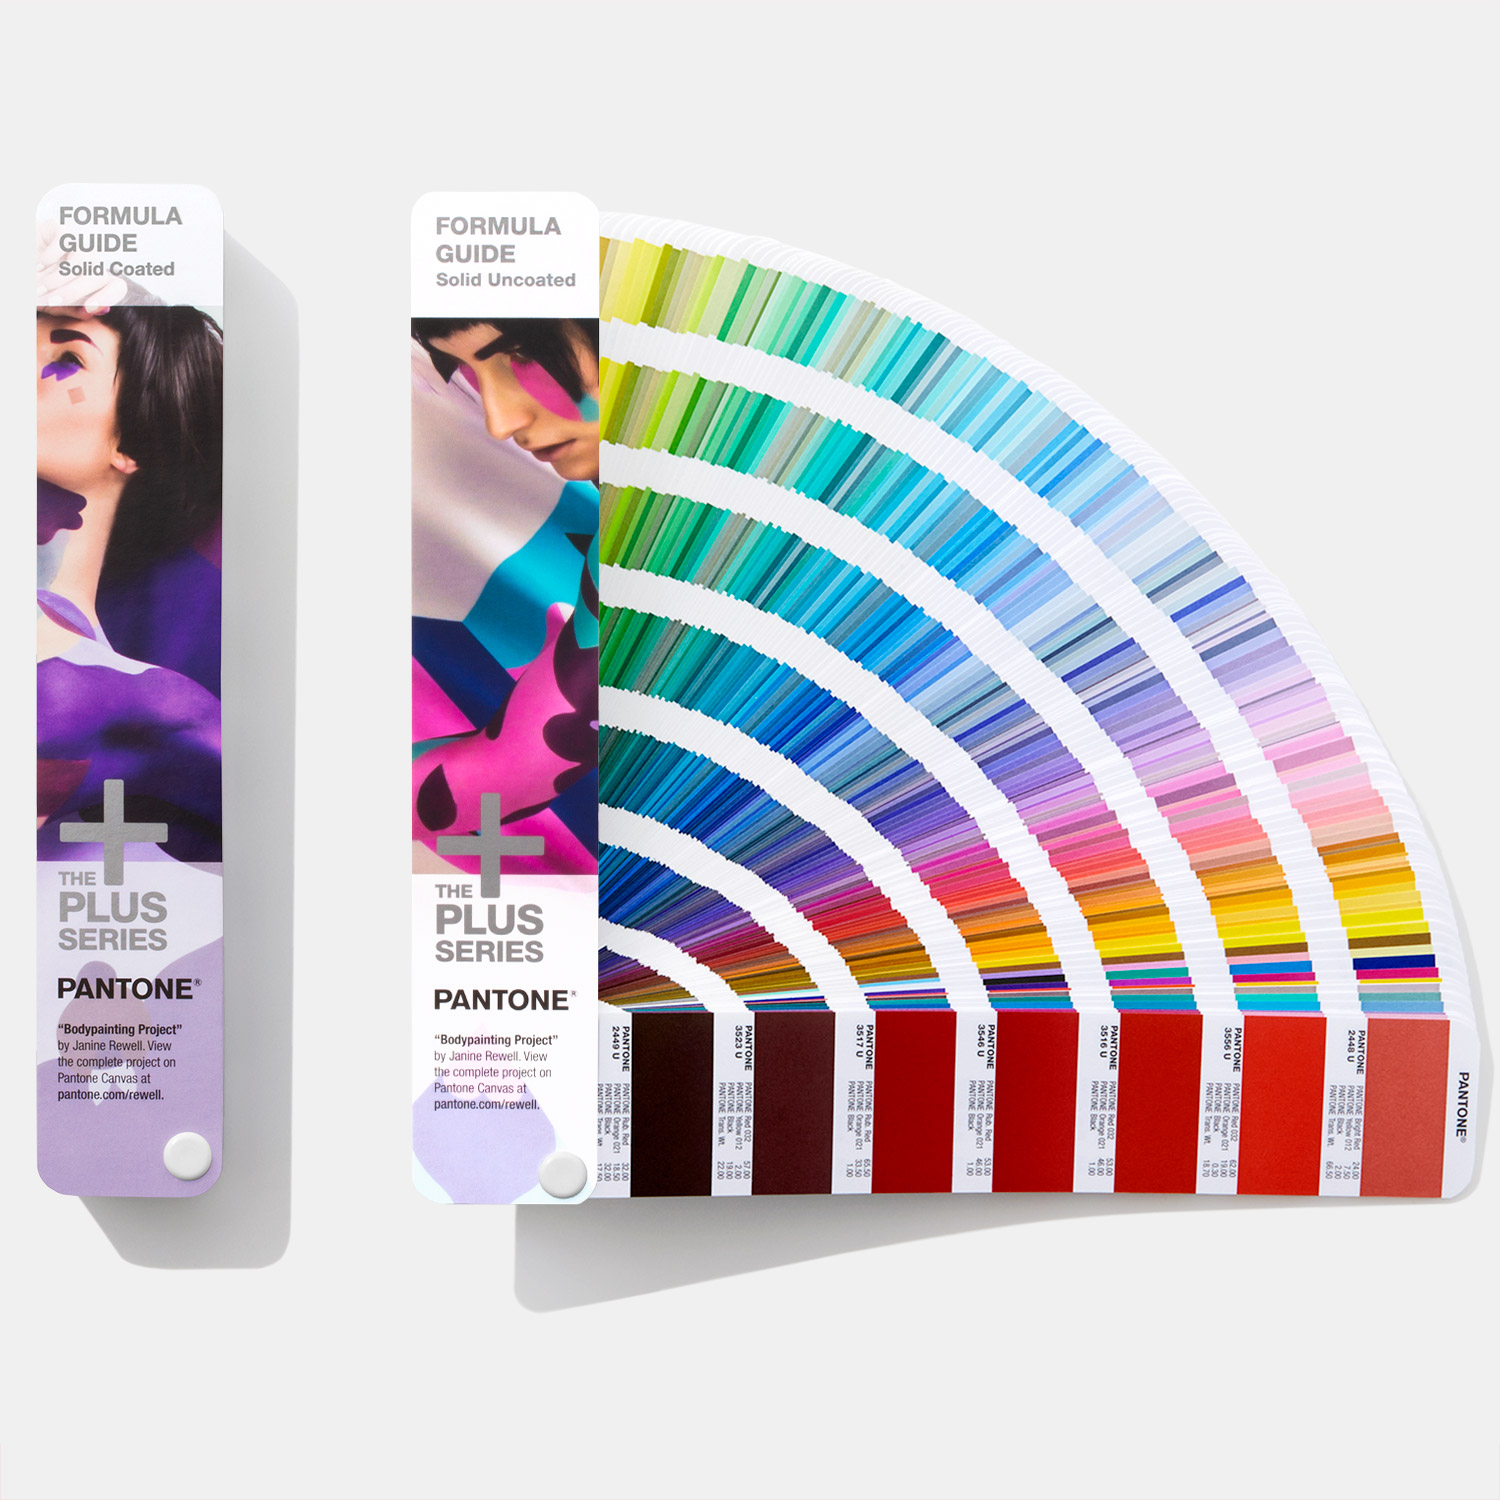 Pantone Formula Guide, printed on a coated paper. Image via Pantone.